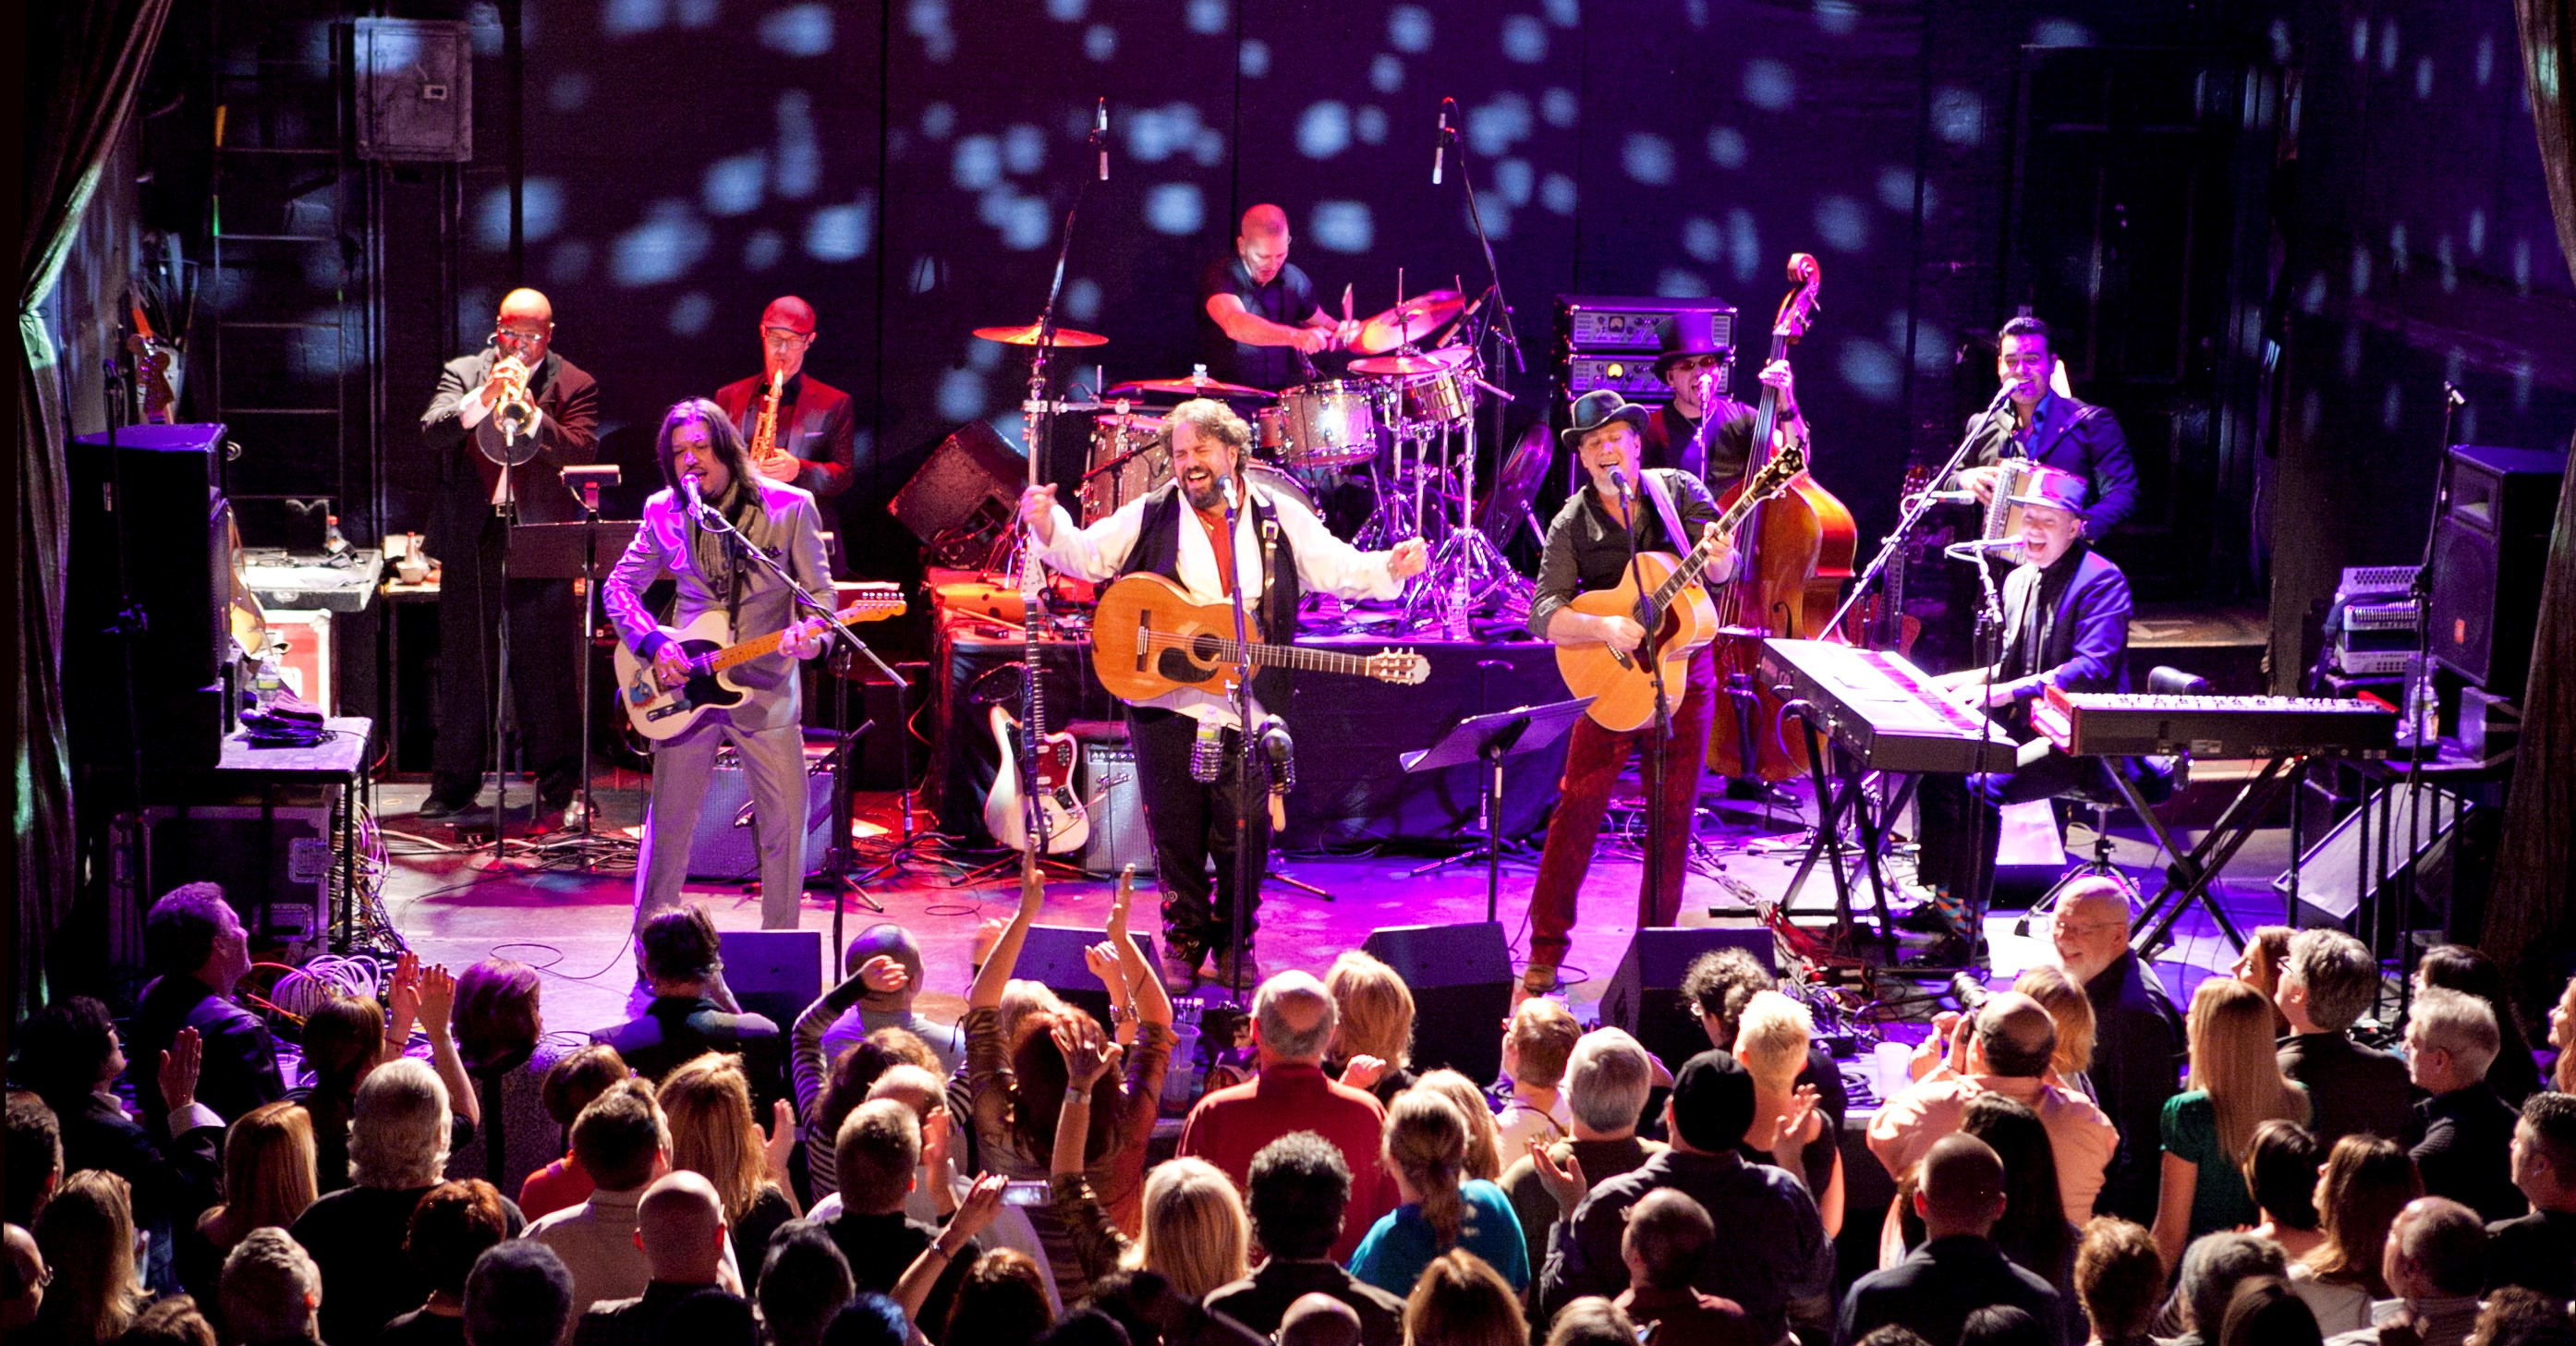 American Country Legends The Mavericks Electrify Crowd At